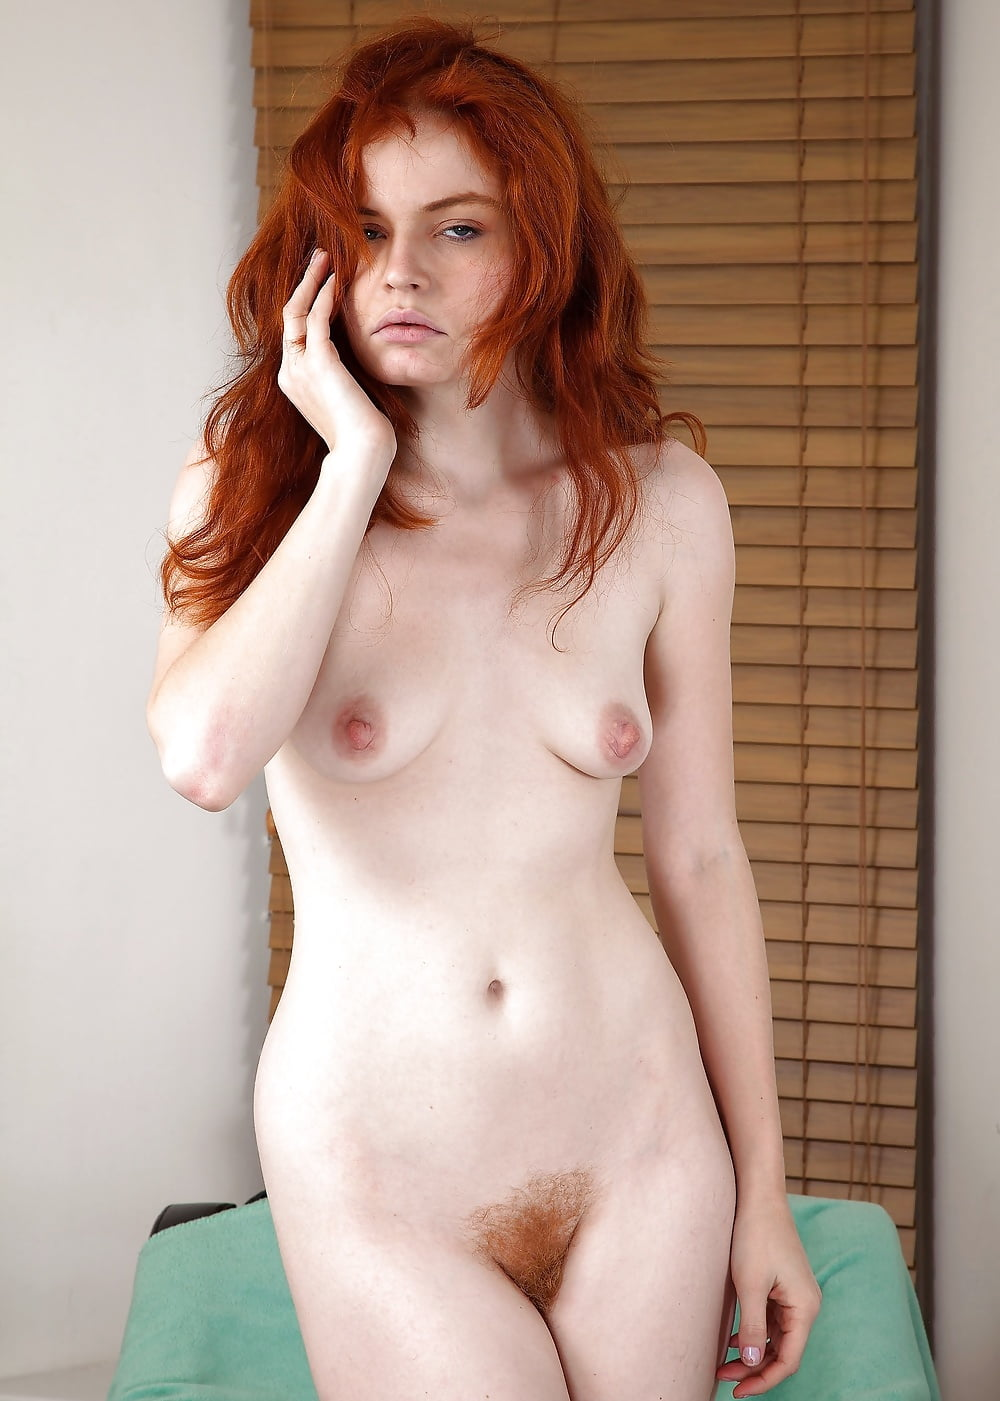 Young redhead nude gallery